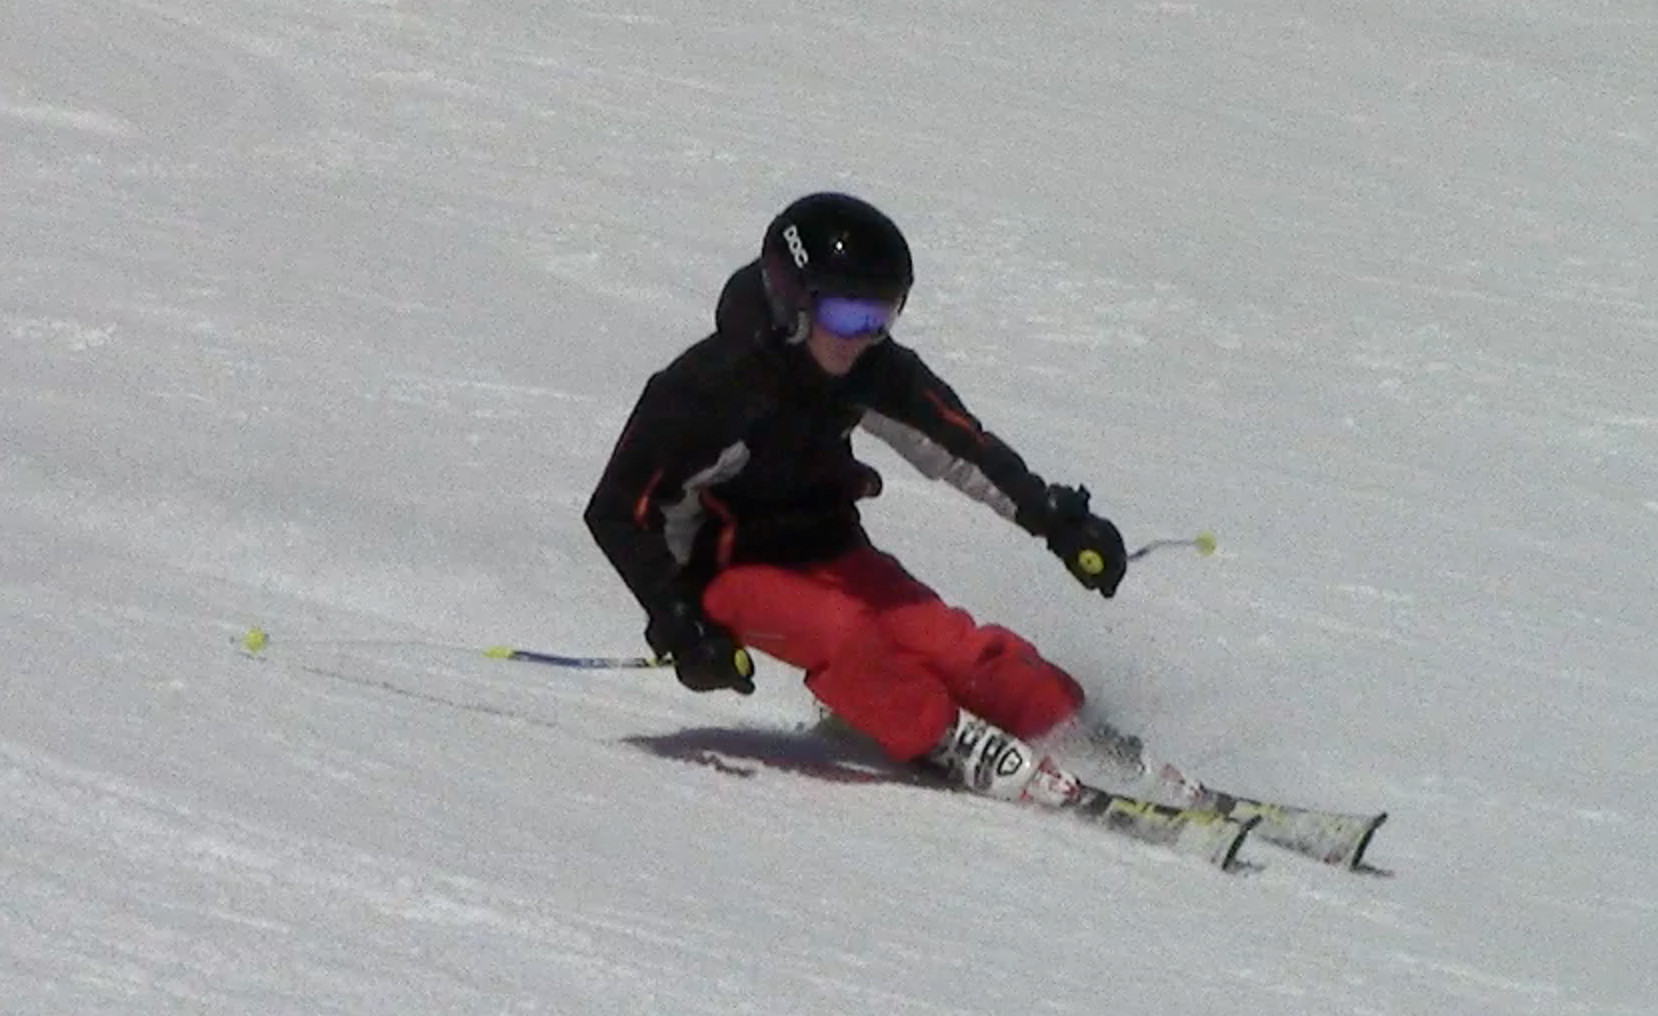 High performance skier with balance and overall relaxation